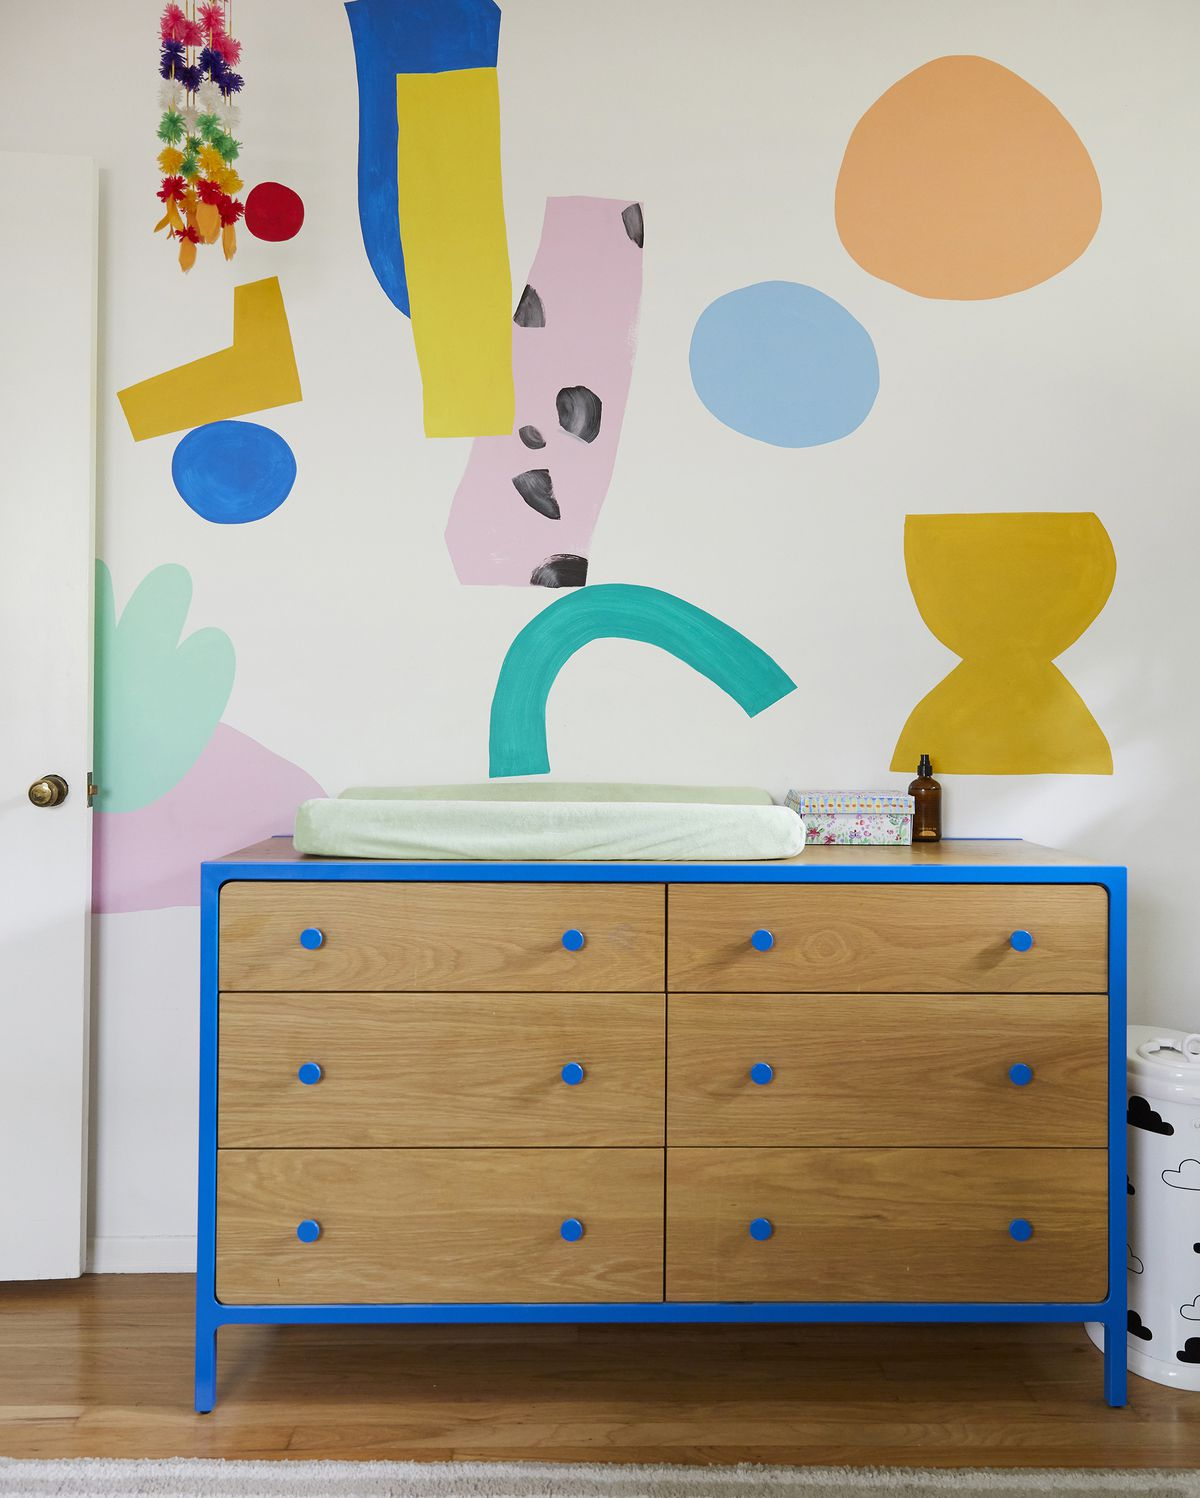 A wooden dresser with painted blue handles sits against a wall with a multitude of colorful painted shapes.